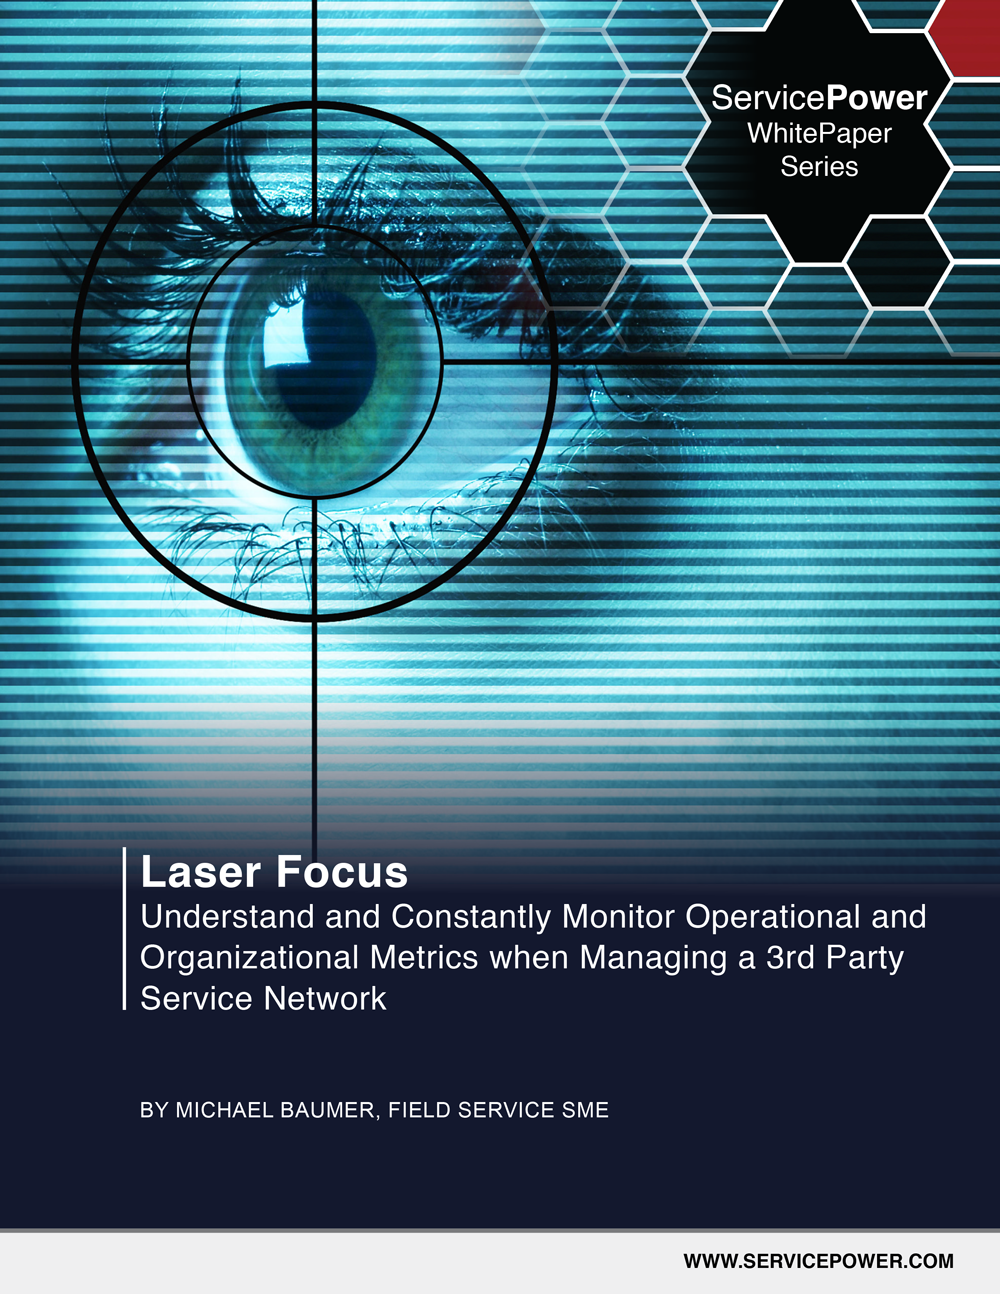 Laser Focus: Understand and Constantly Monitor Operational and Organizational Metrics when Managing a 3rd Party Service Network